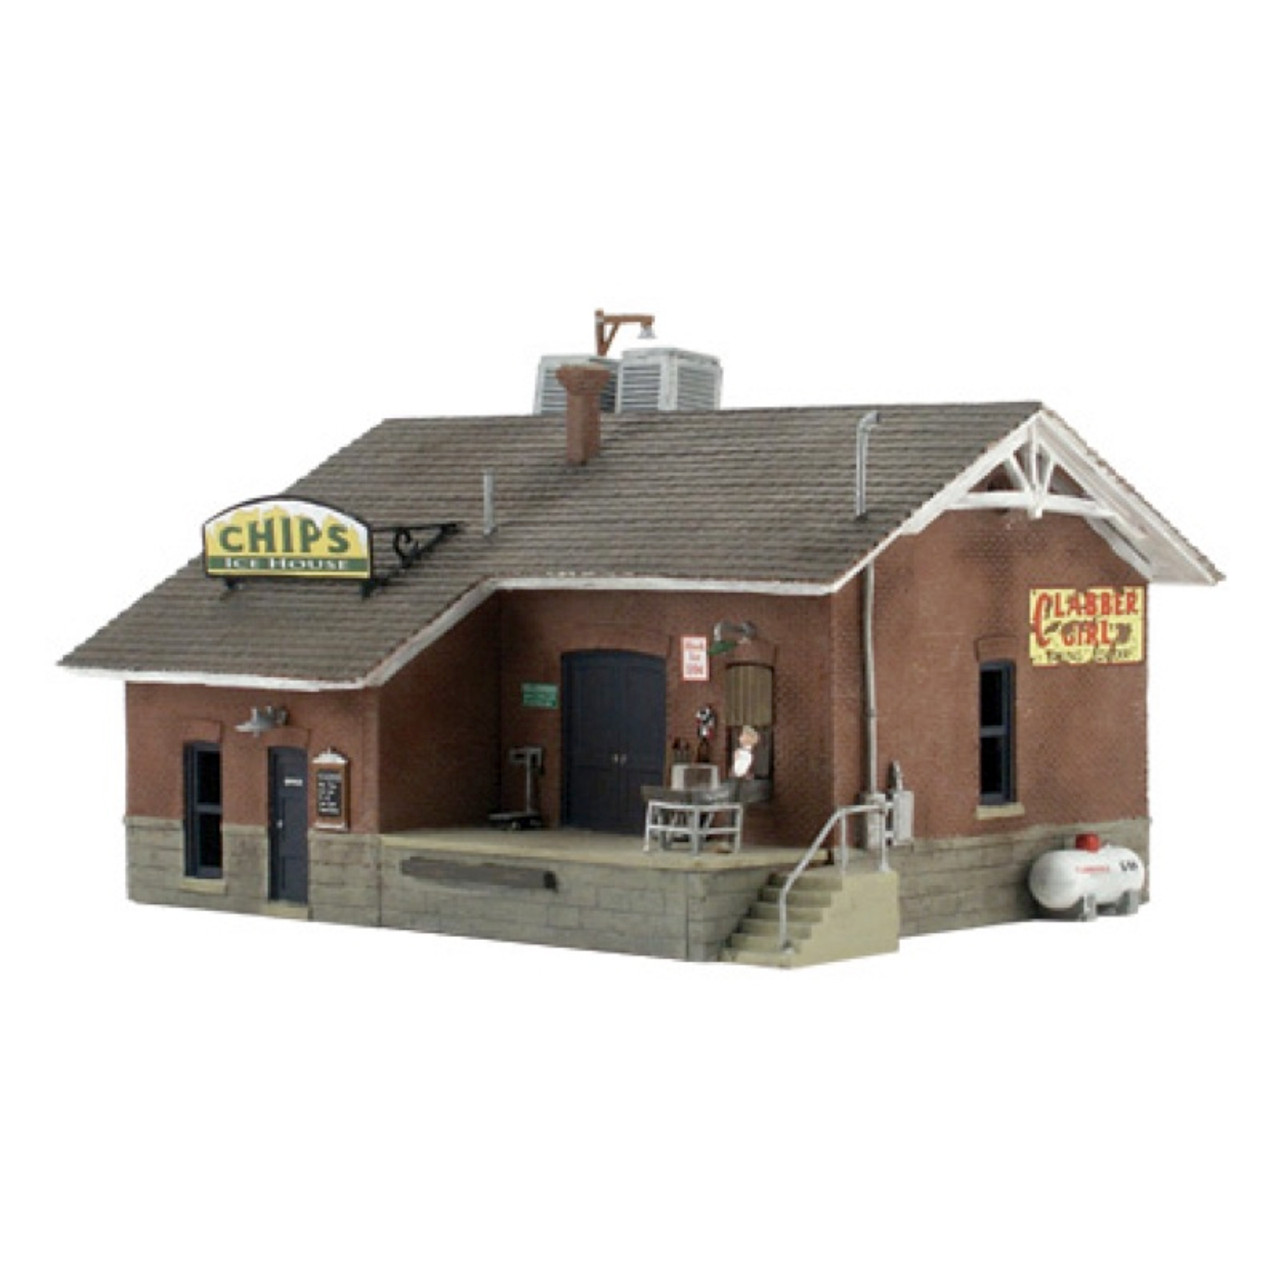 Woodland Scenics BR4944 N Scale Theater Built /& Ready Structure